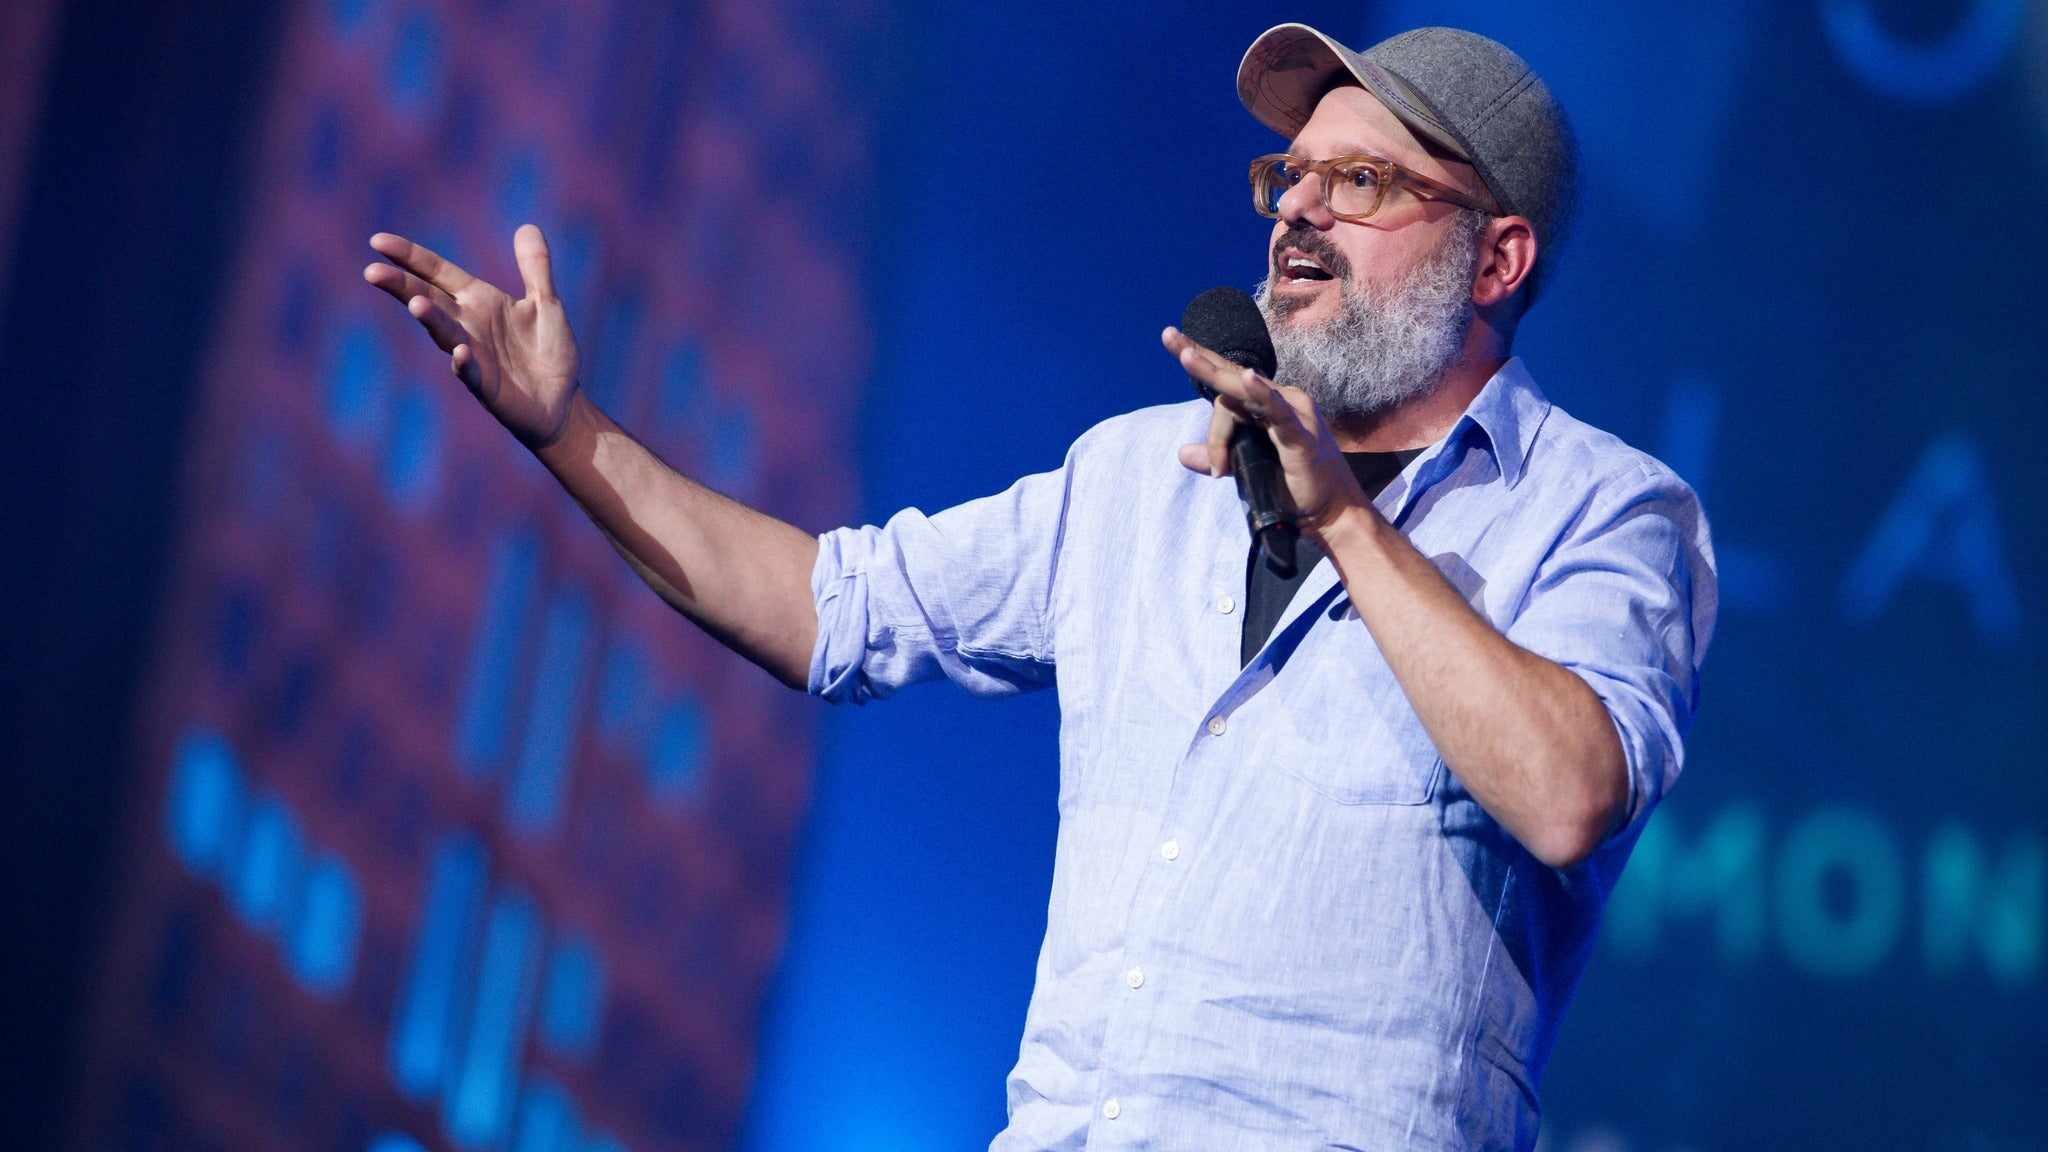 David Cross at House of Independents